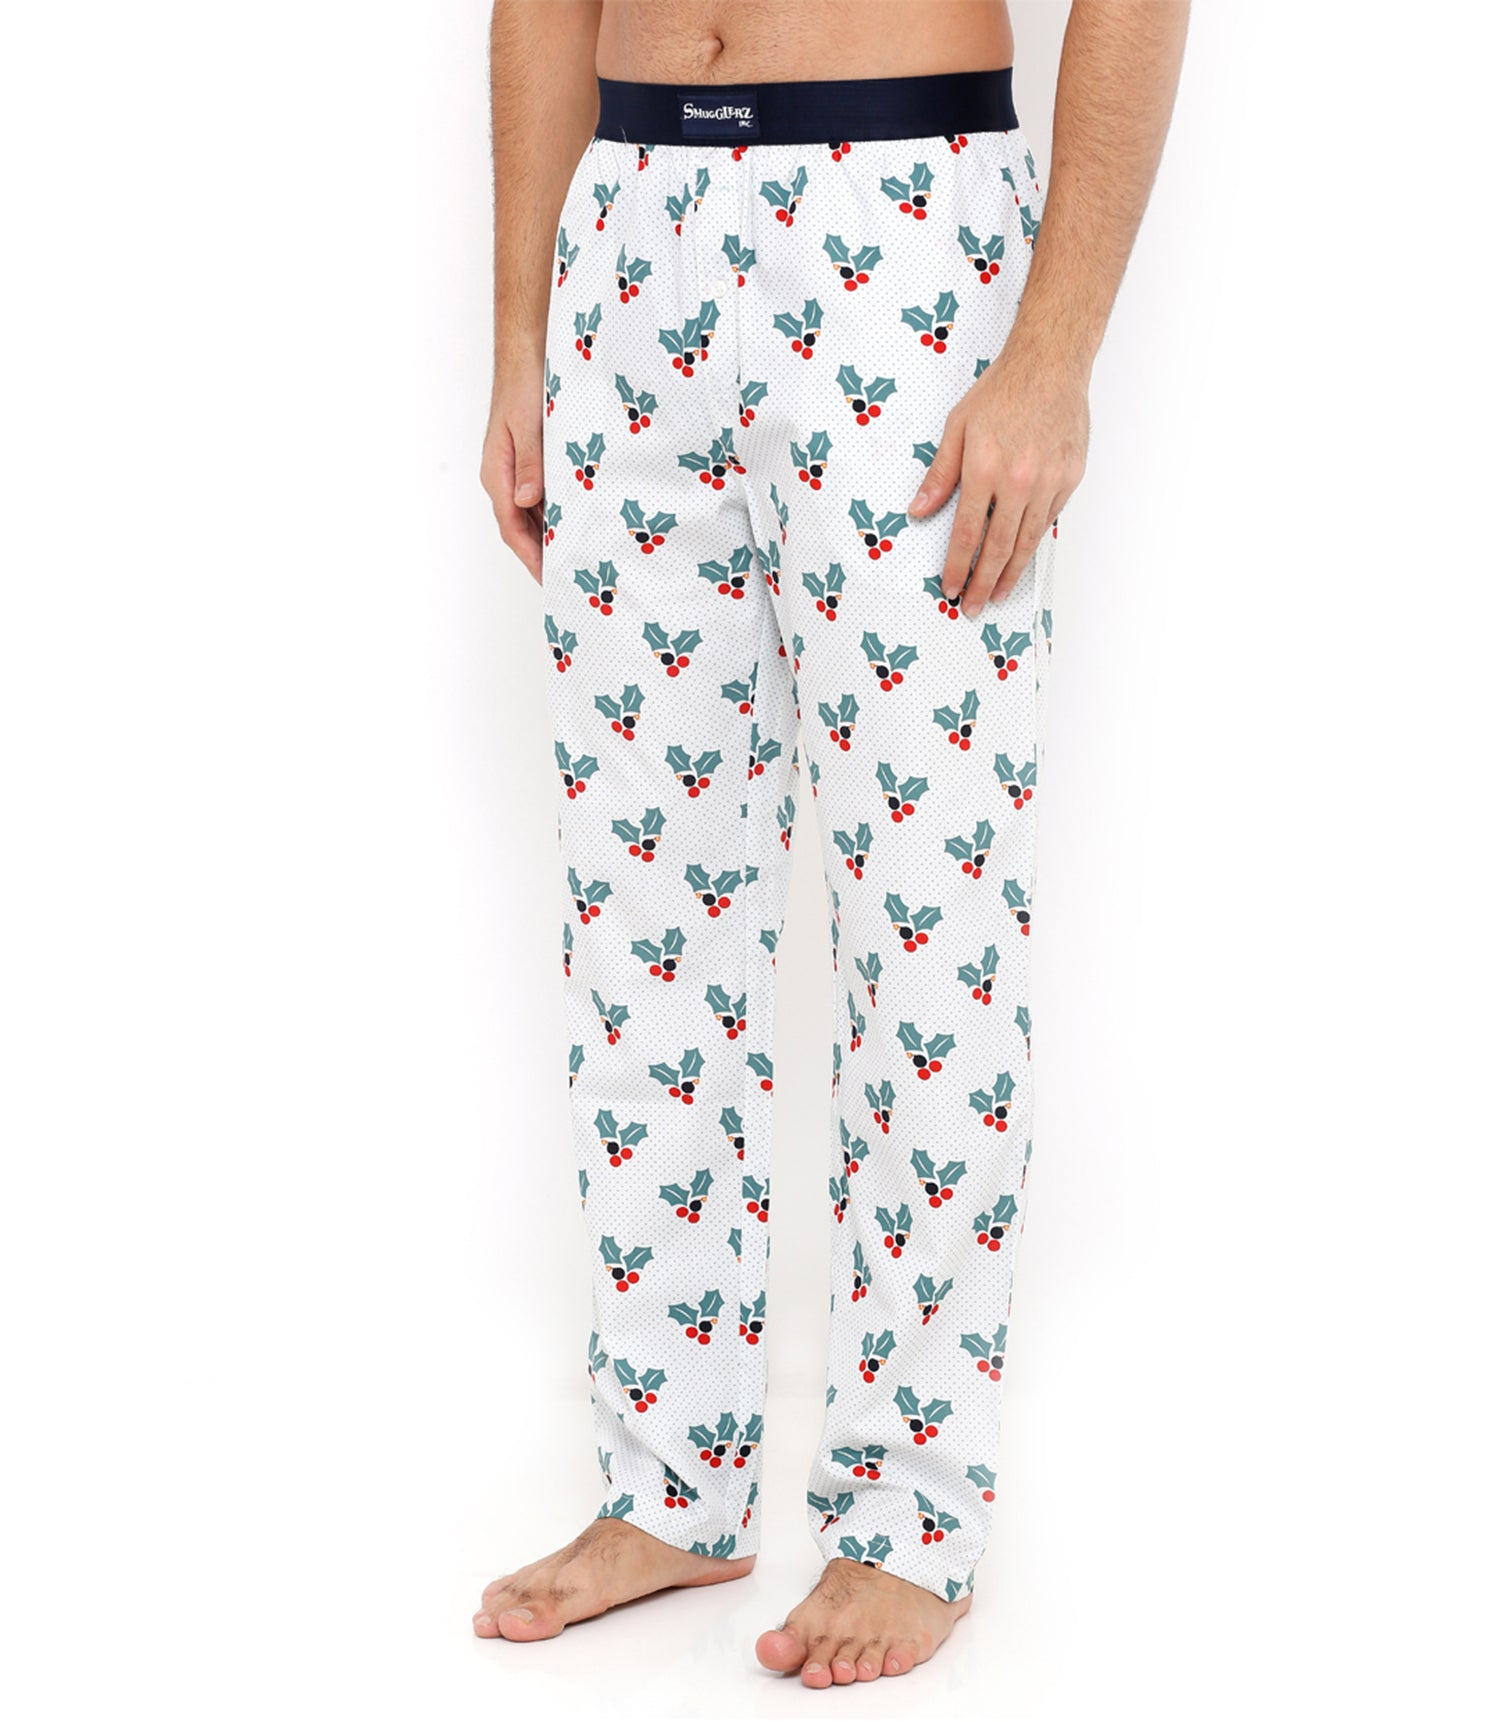 Boom Mistletoe - Christmas Pajamas - Limited Edition